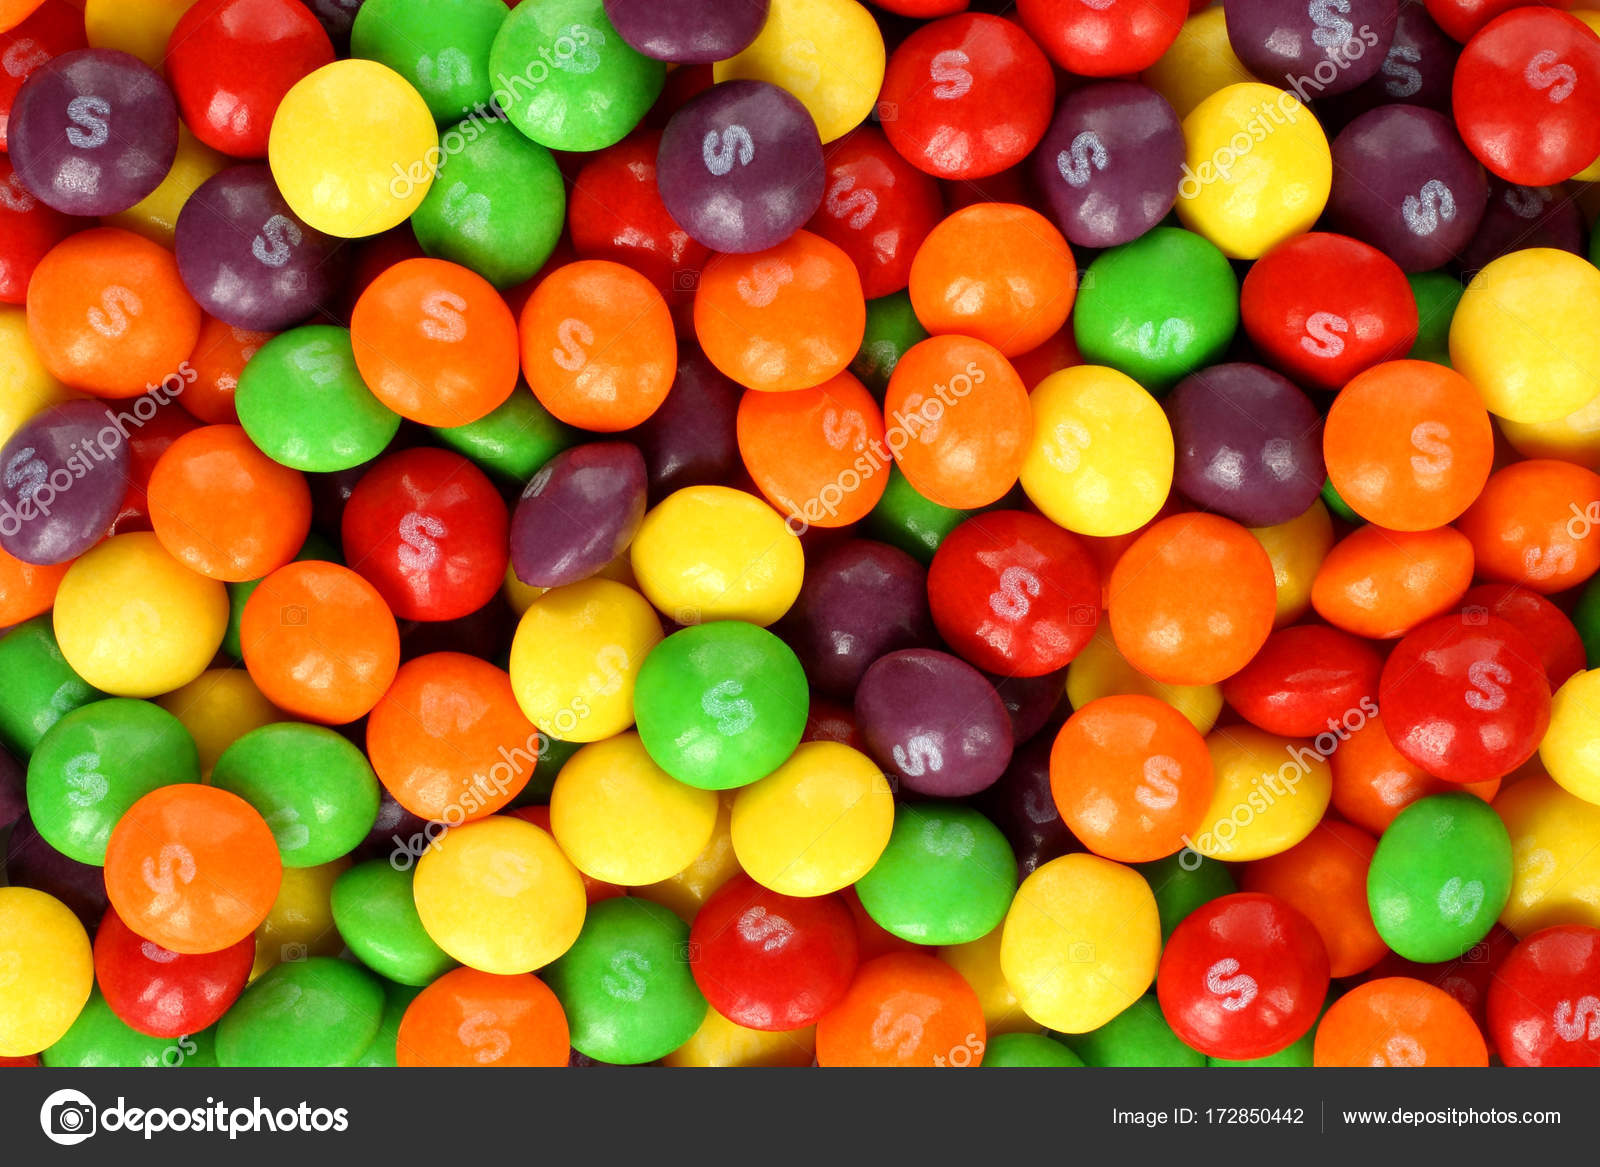 Skittles multicolored fruit candies background stock editorial skittles multicolored fruit candies background stock photo buycottarizona Gallery